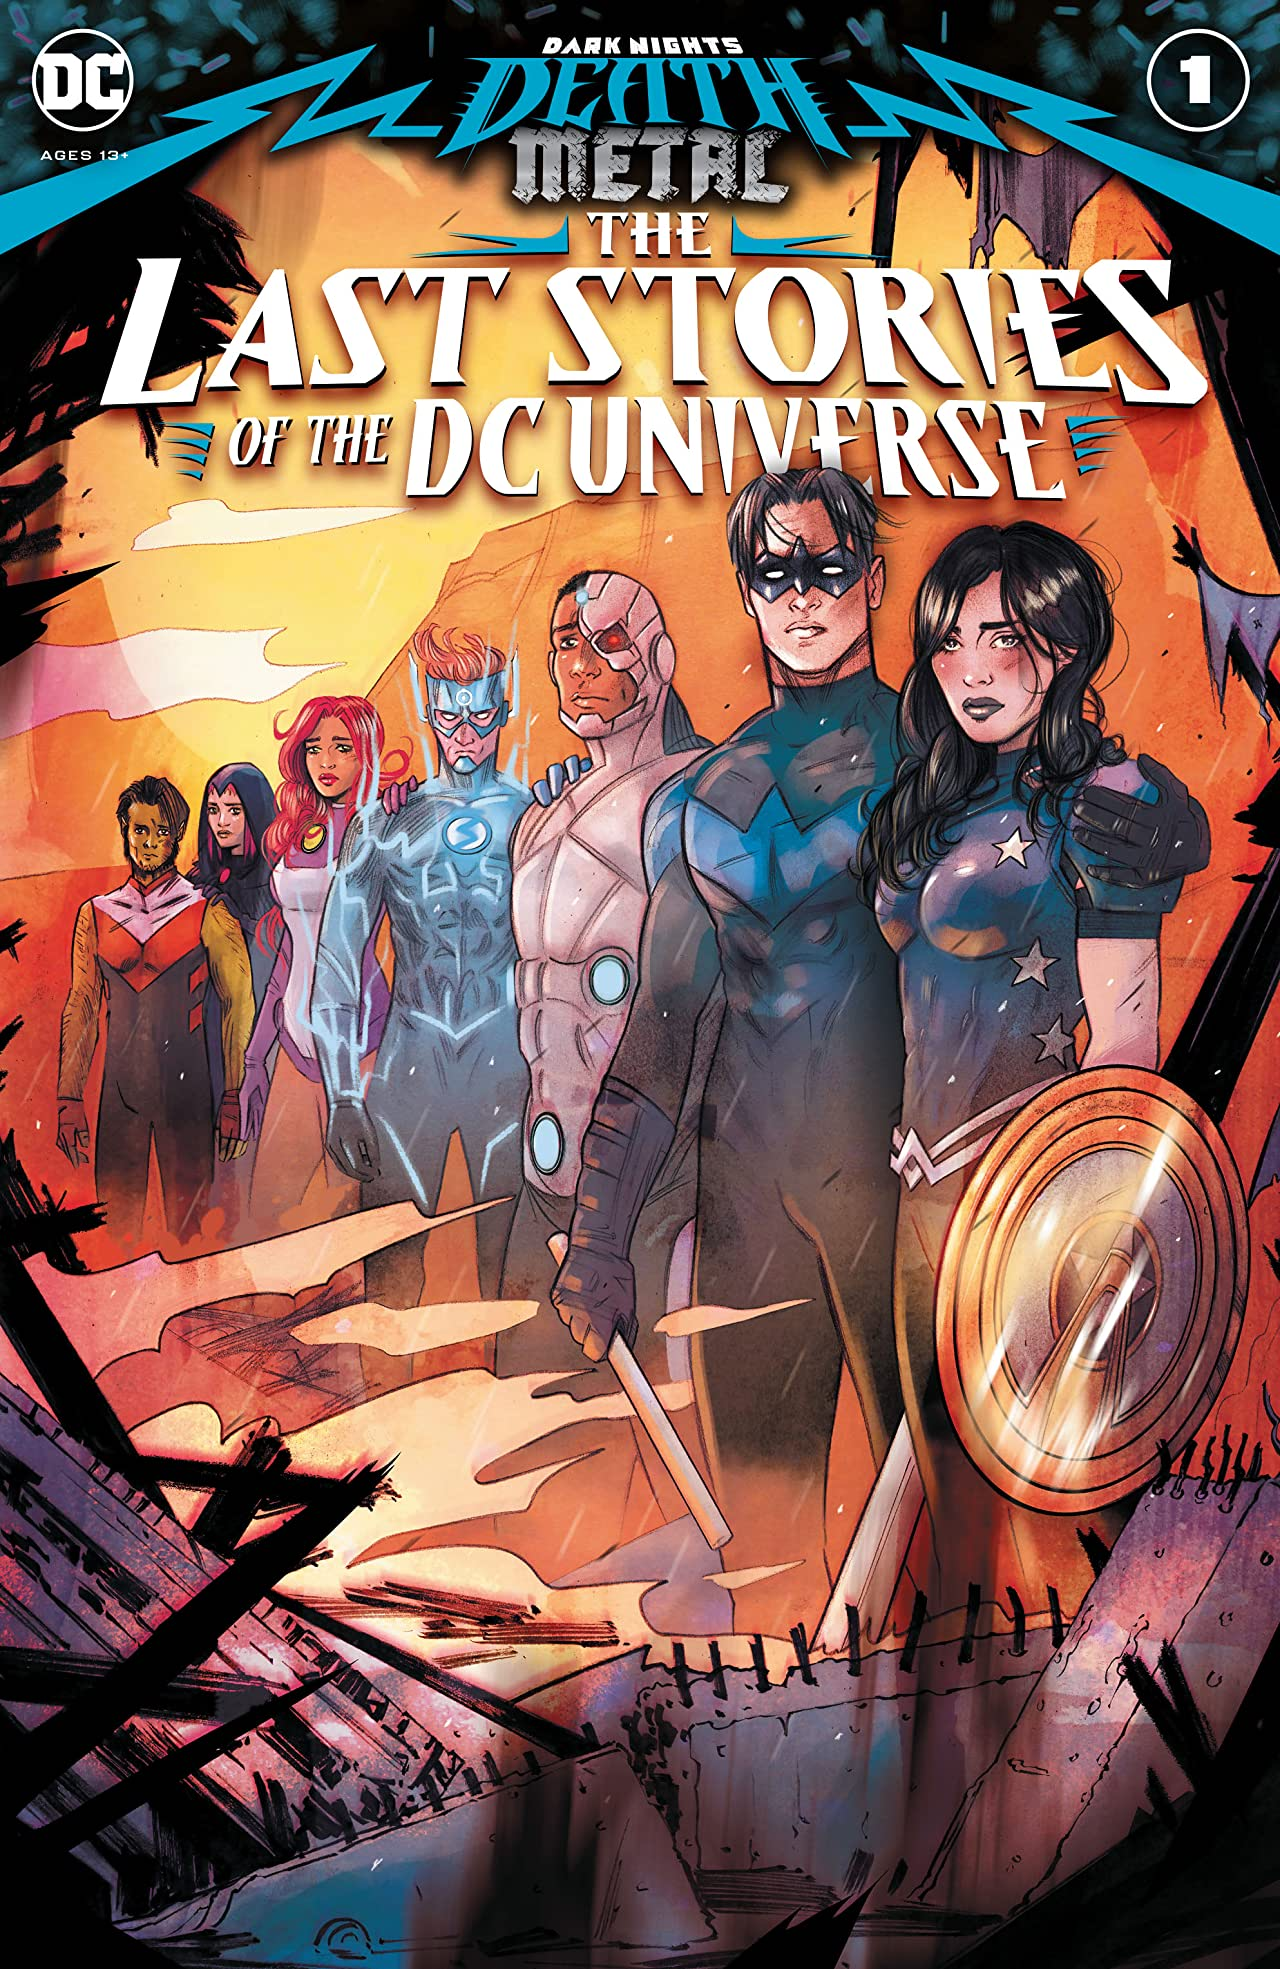 Dark Nights: Death Metal: The Last Stories of the DC Universe (2020-) #1